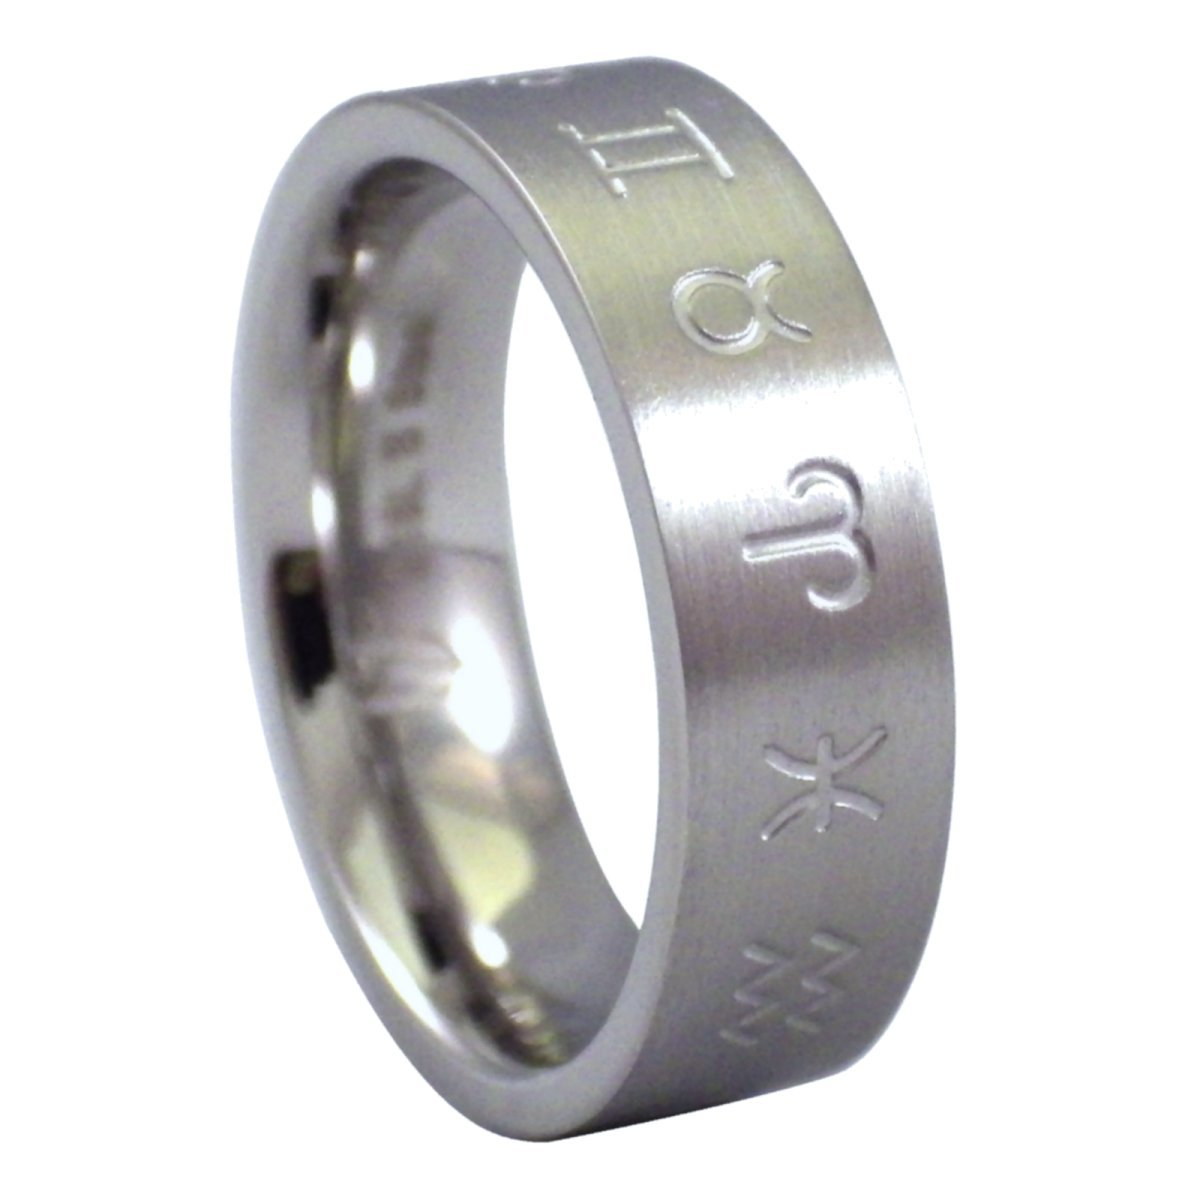 Fantasy Forge Jewelry Mens Zodiac Ring Stainless Steel Band Comfort Fit 6mm Size 13